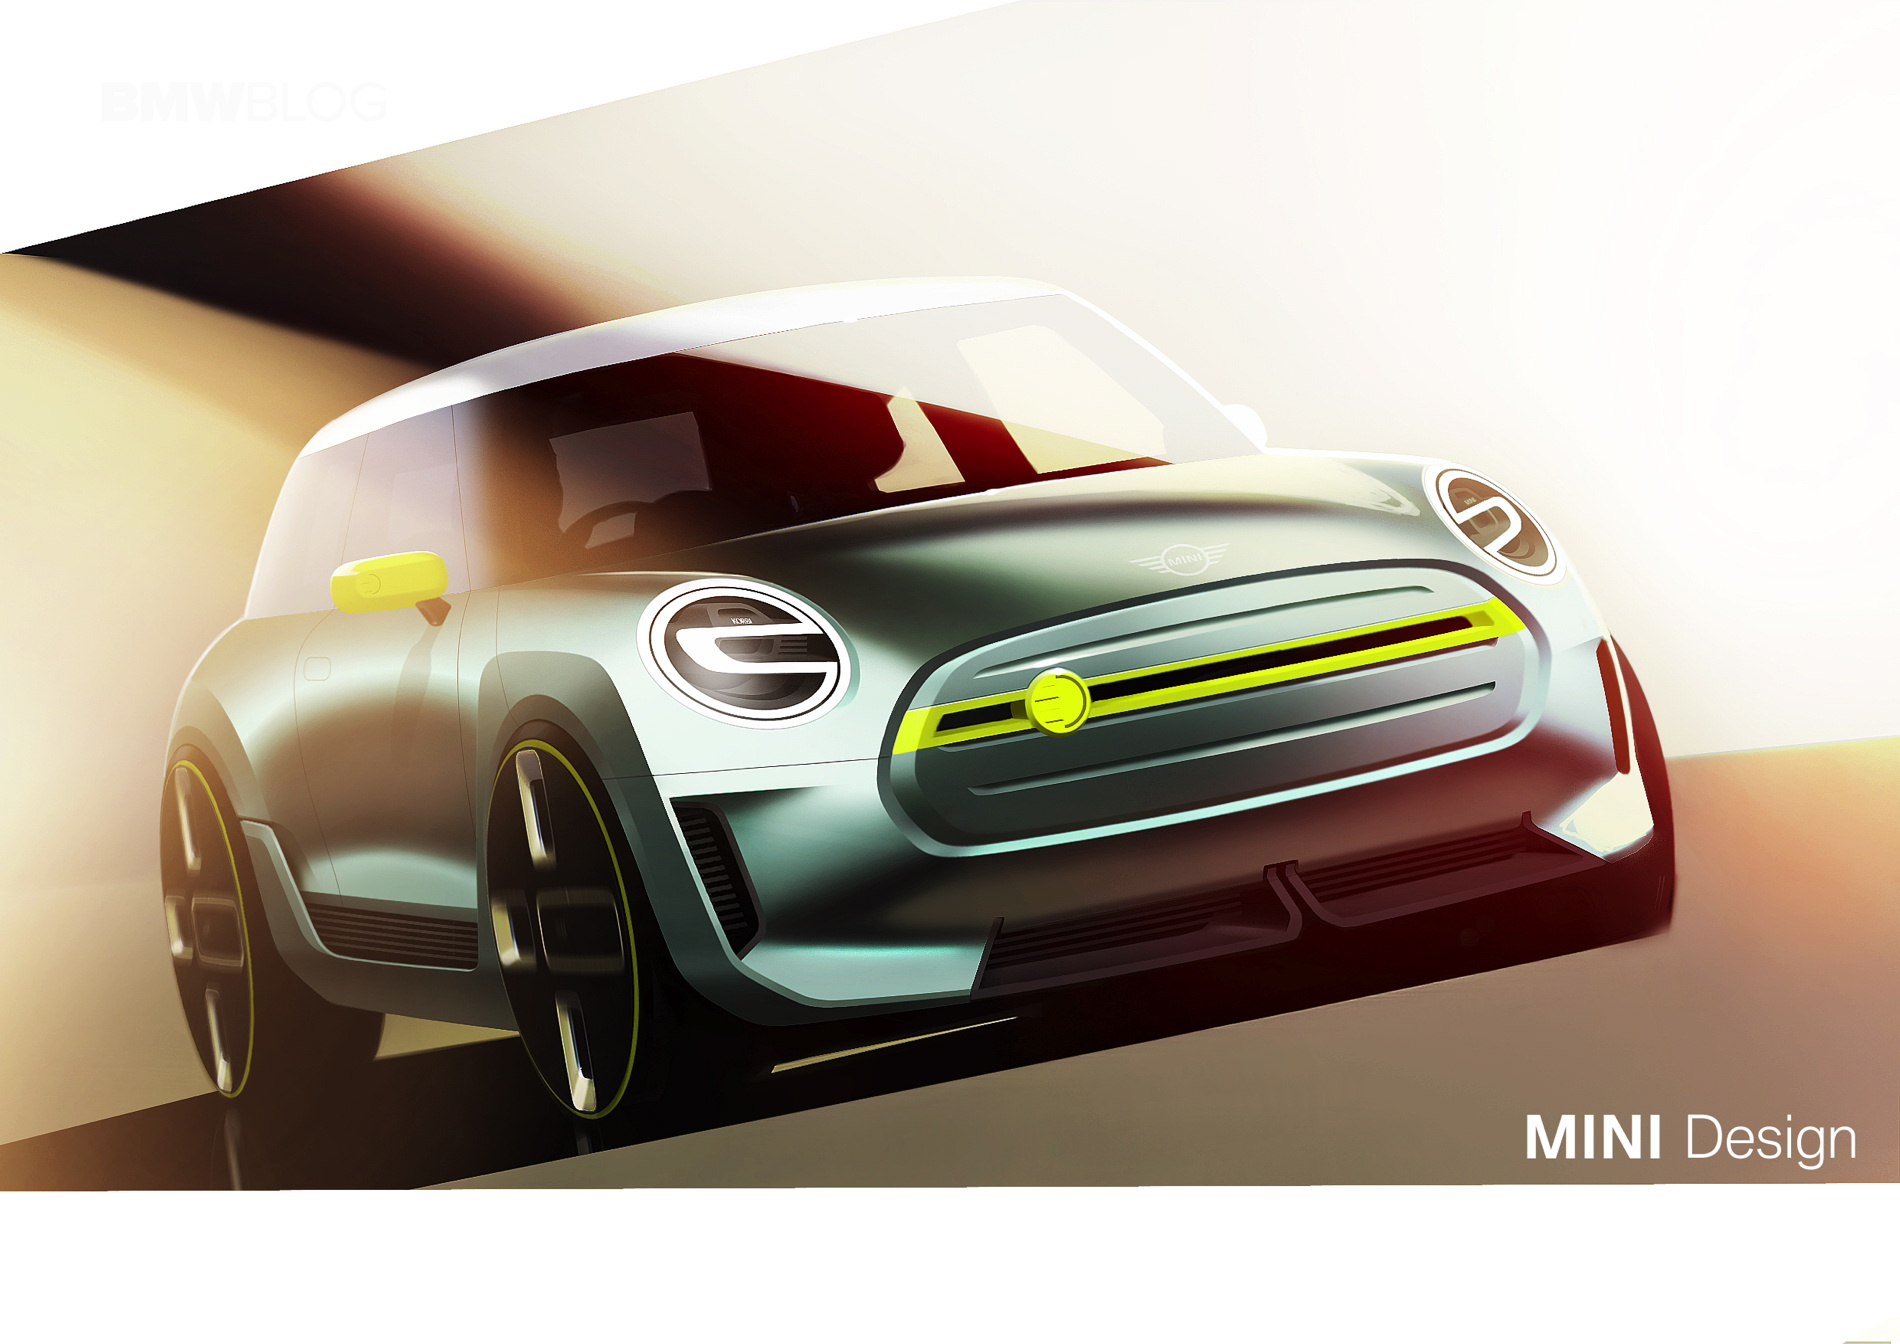 MINI Electric Concept sketches 03